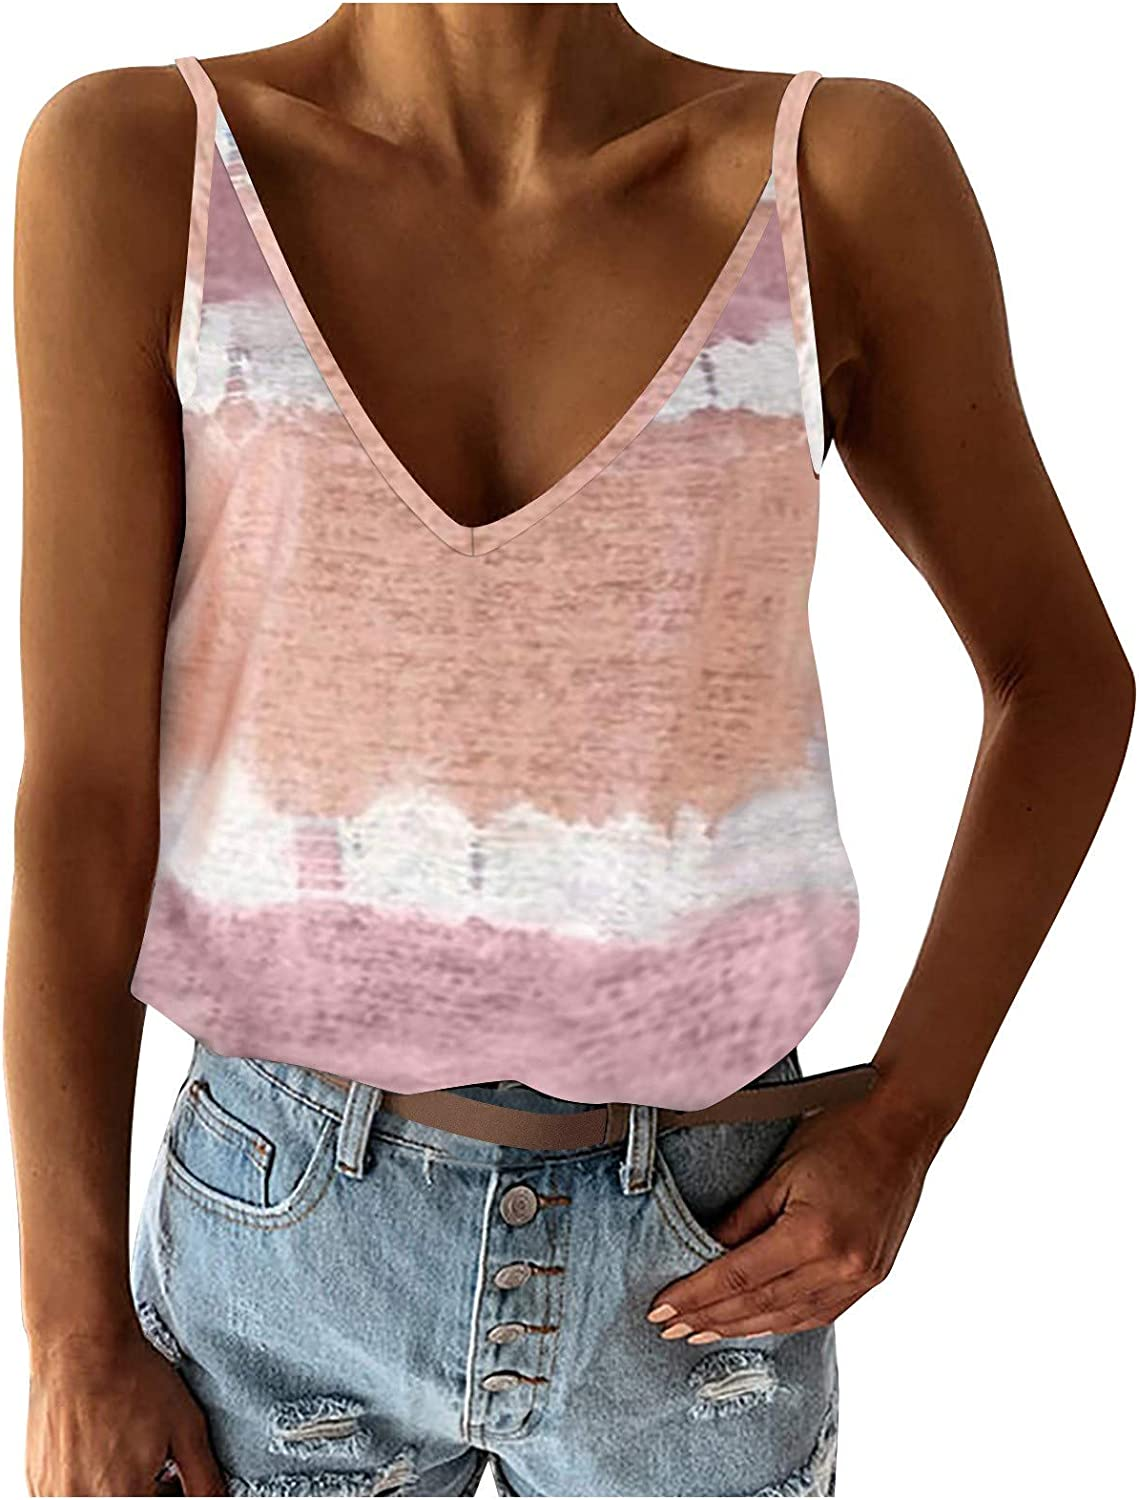 AODONG Tank Tops for Women, Womens Casual Fashion Summer Sleeveless Vacation Graphic Vest Tops Tee Shirts Blouse Tops